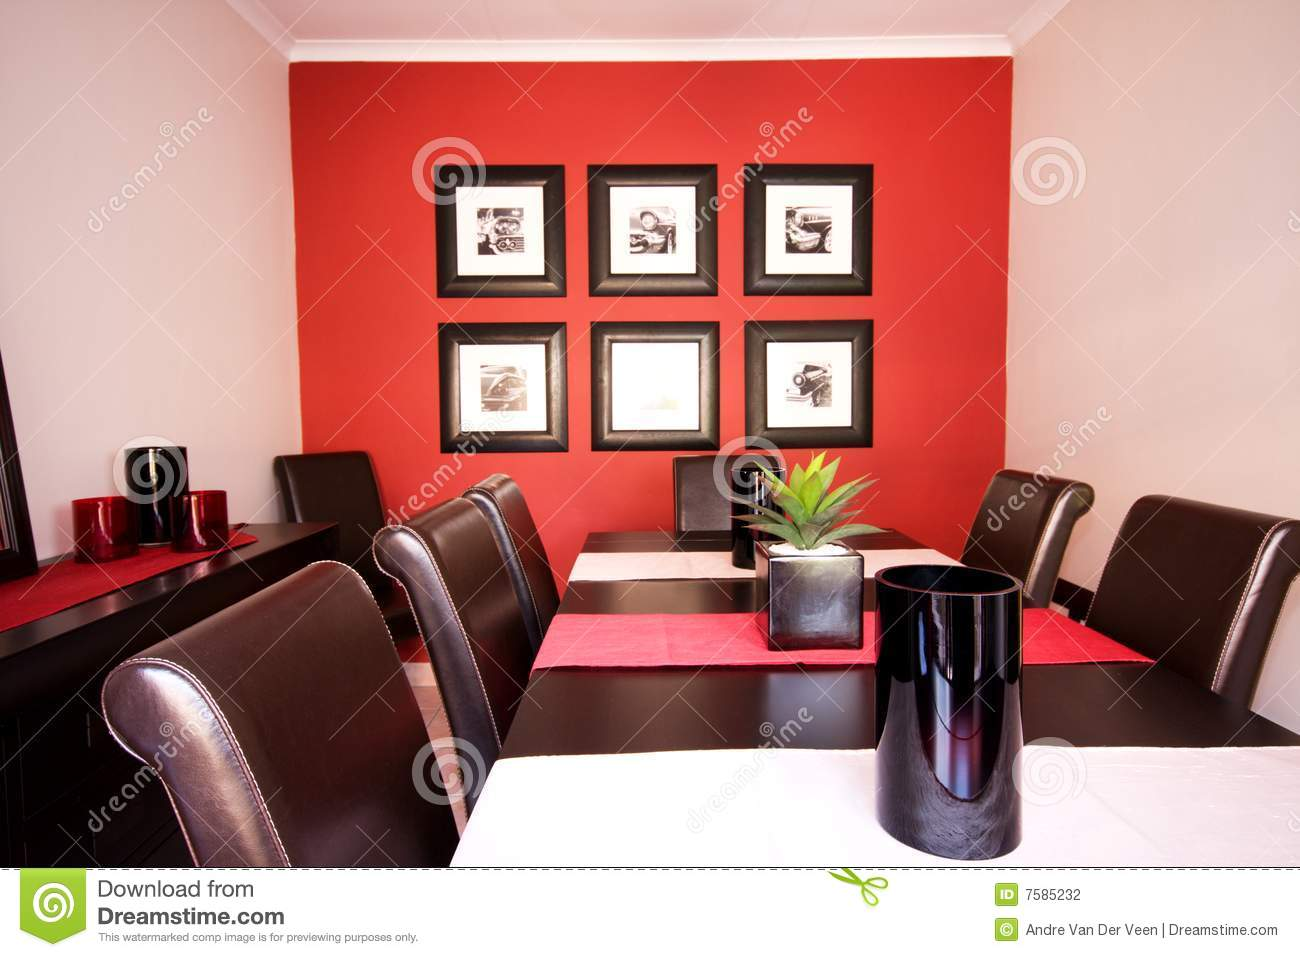 Dining Room Interior With Red Wall Stock Photo Image